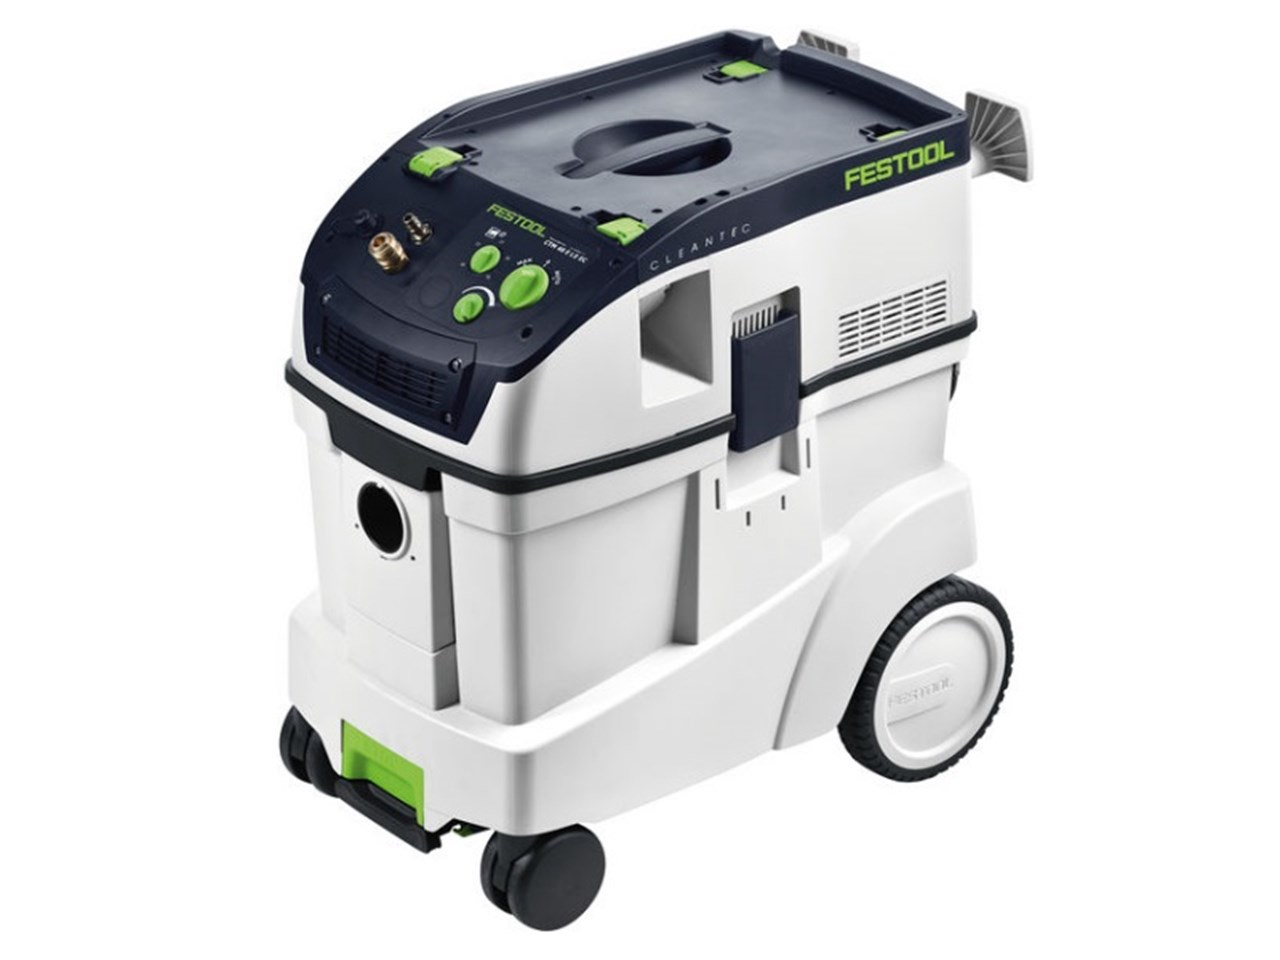 festool ctl 48 e le ec 240v cleantec mobile dust extractor. Black Bedroom Furniture Sets. Home Design Ideas